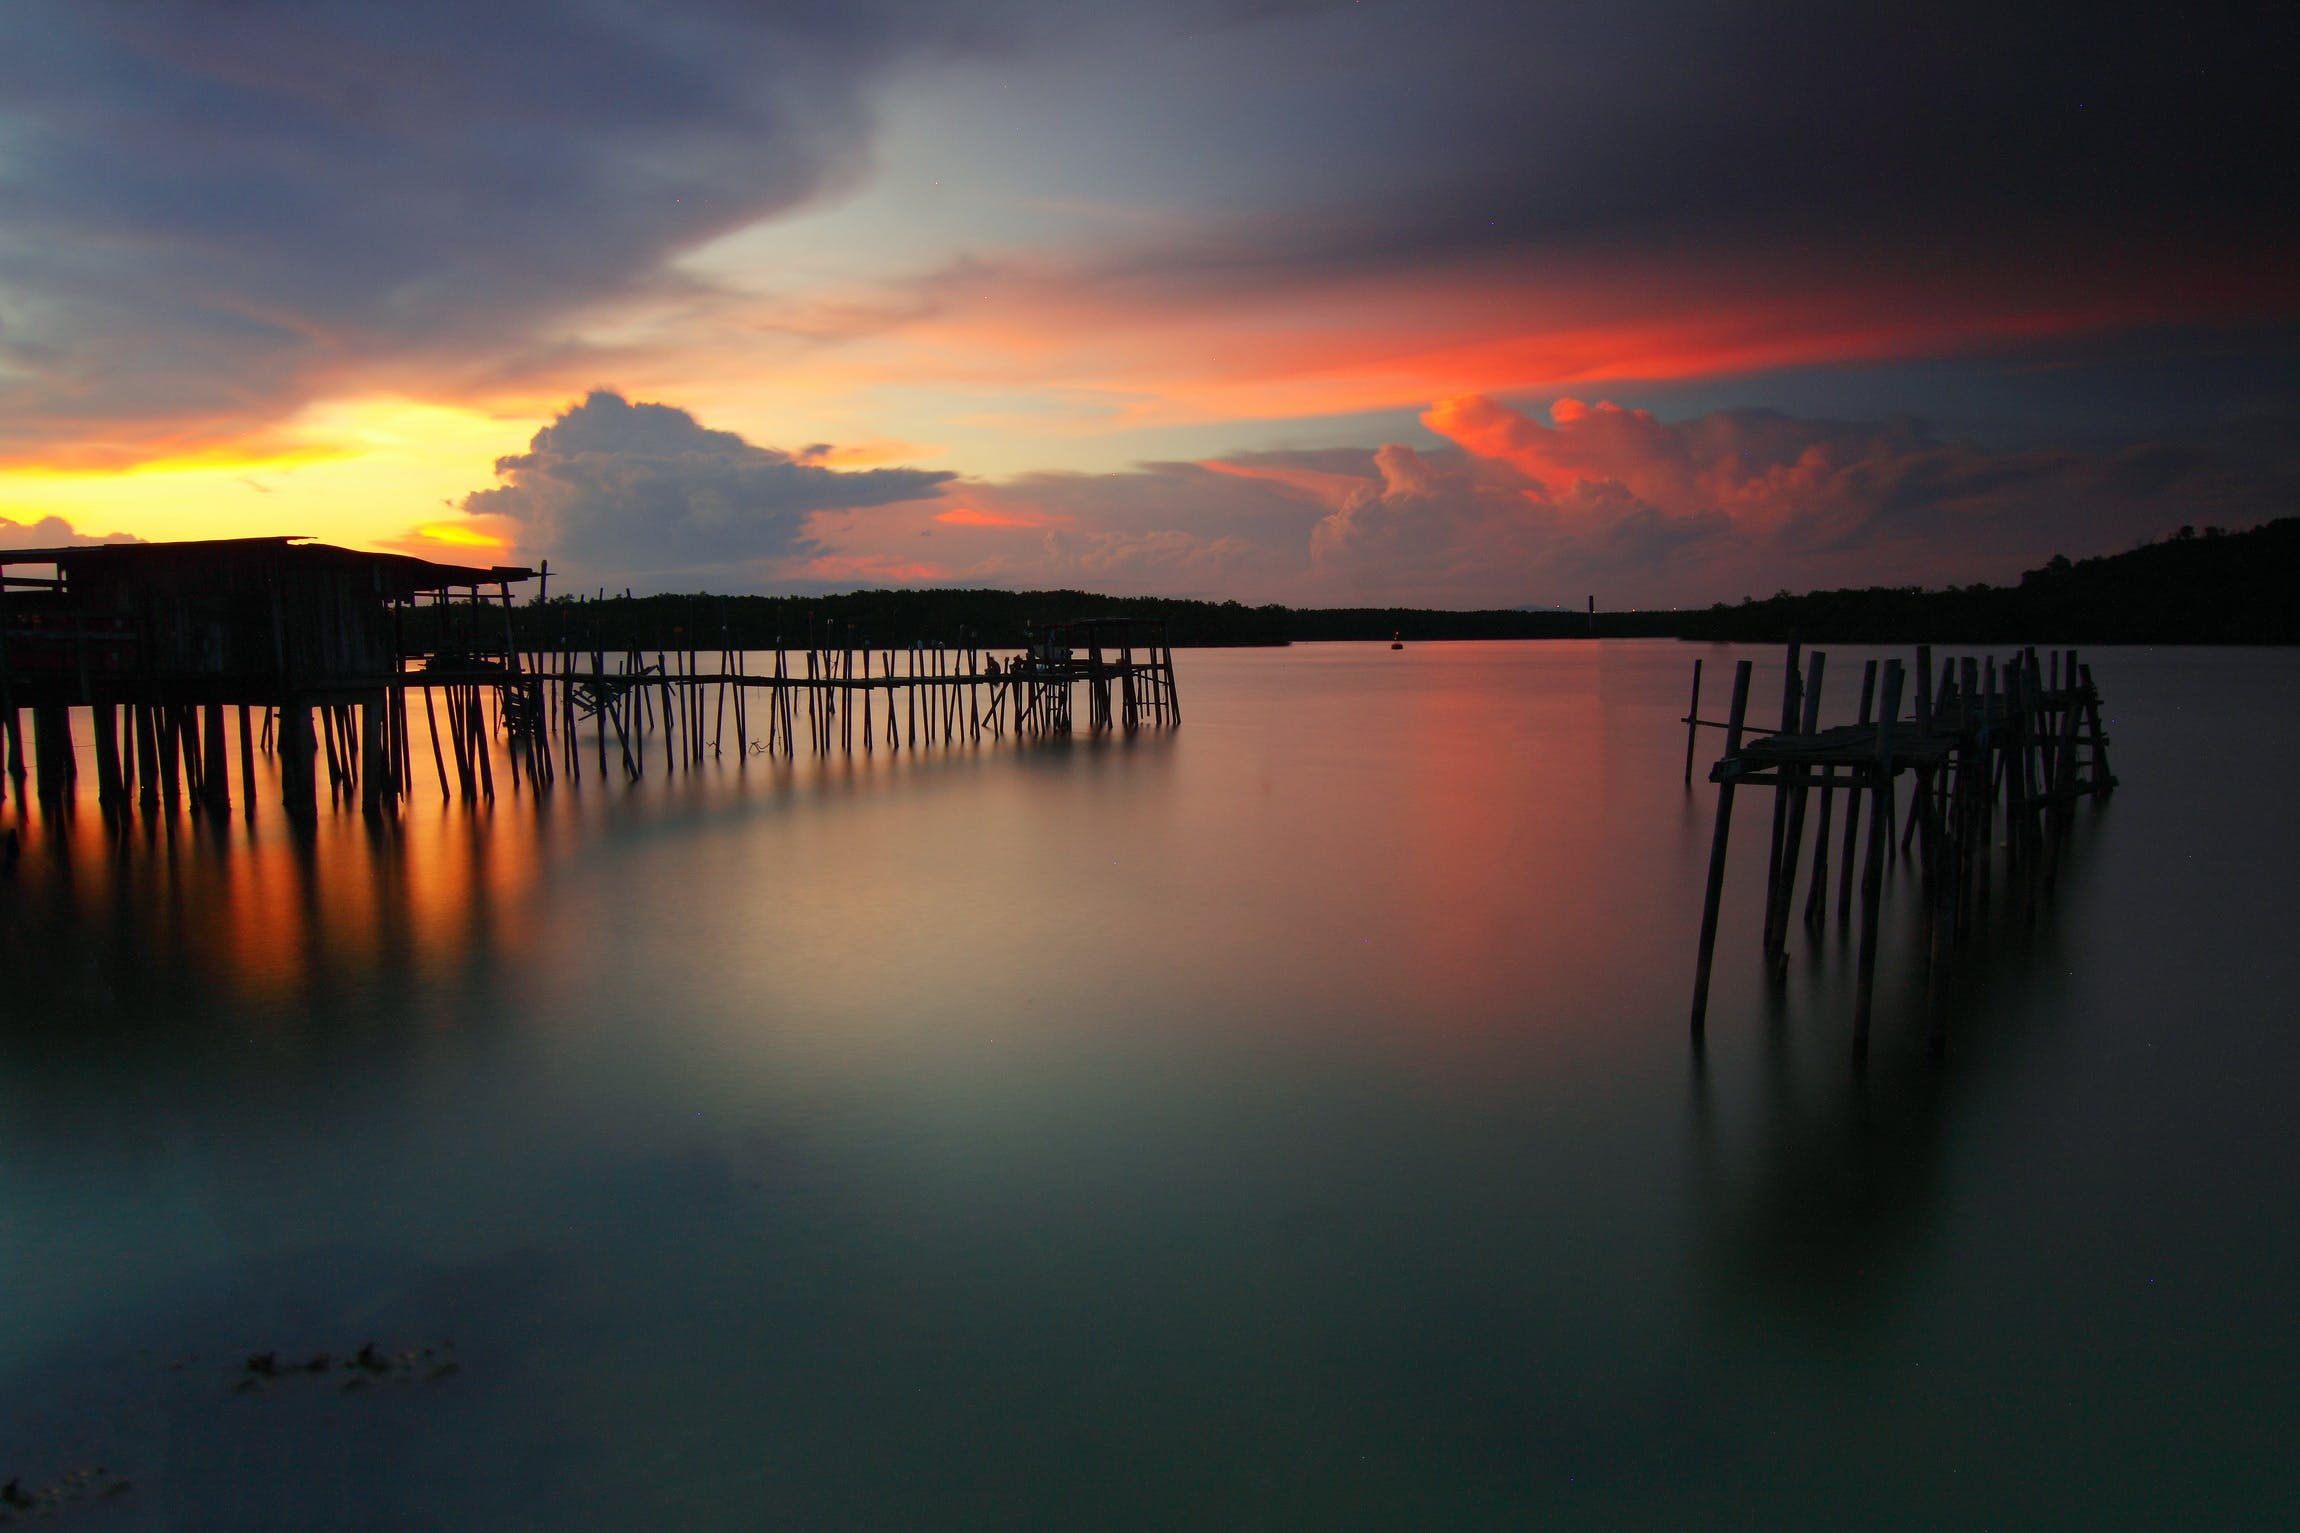 Wooden Boardwalk on Body of Water during Dawn